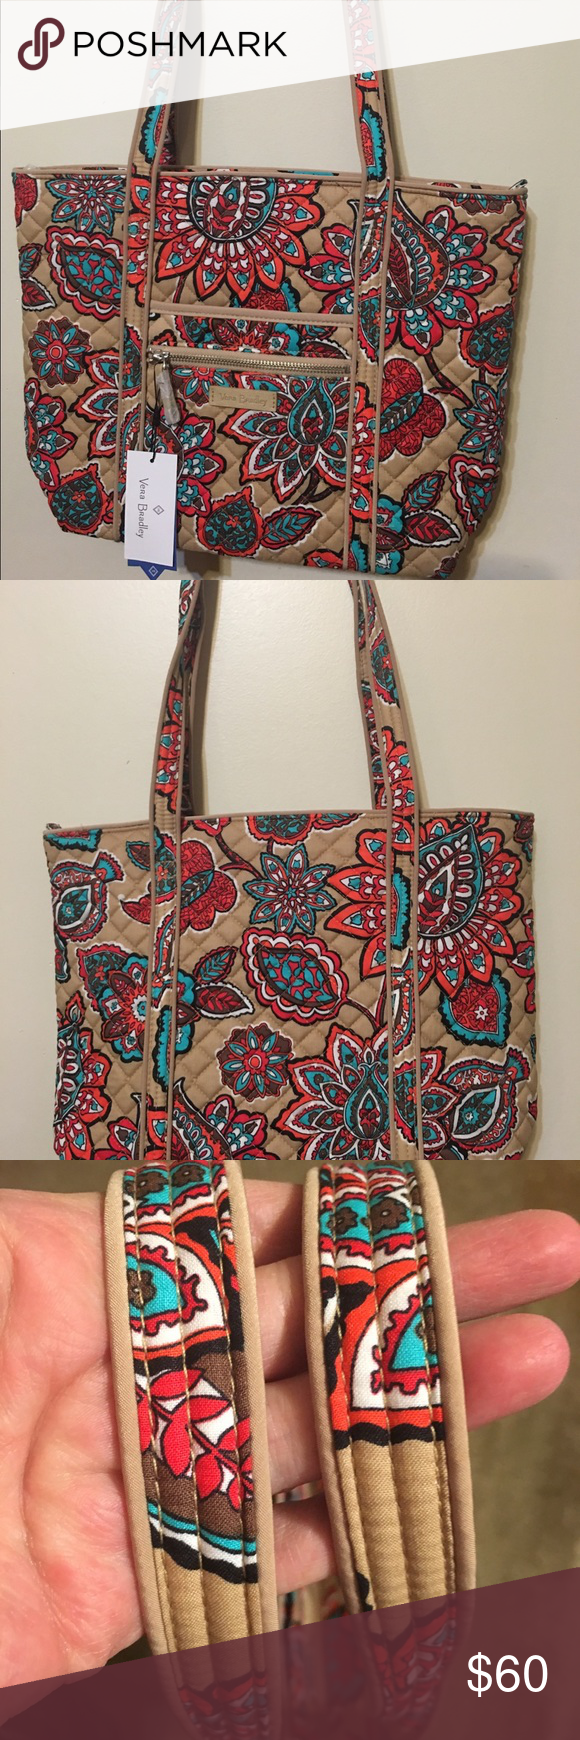 142514cd6f Vera Bradley Iconic Small Vera Tote Nwt and new pattern Desert Floral.  Strap drop 12